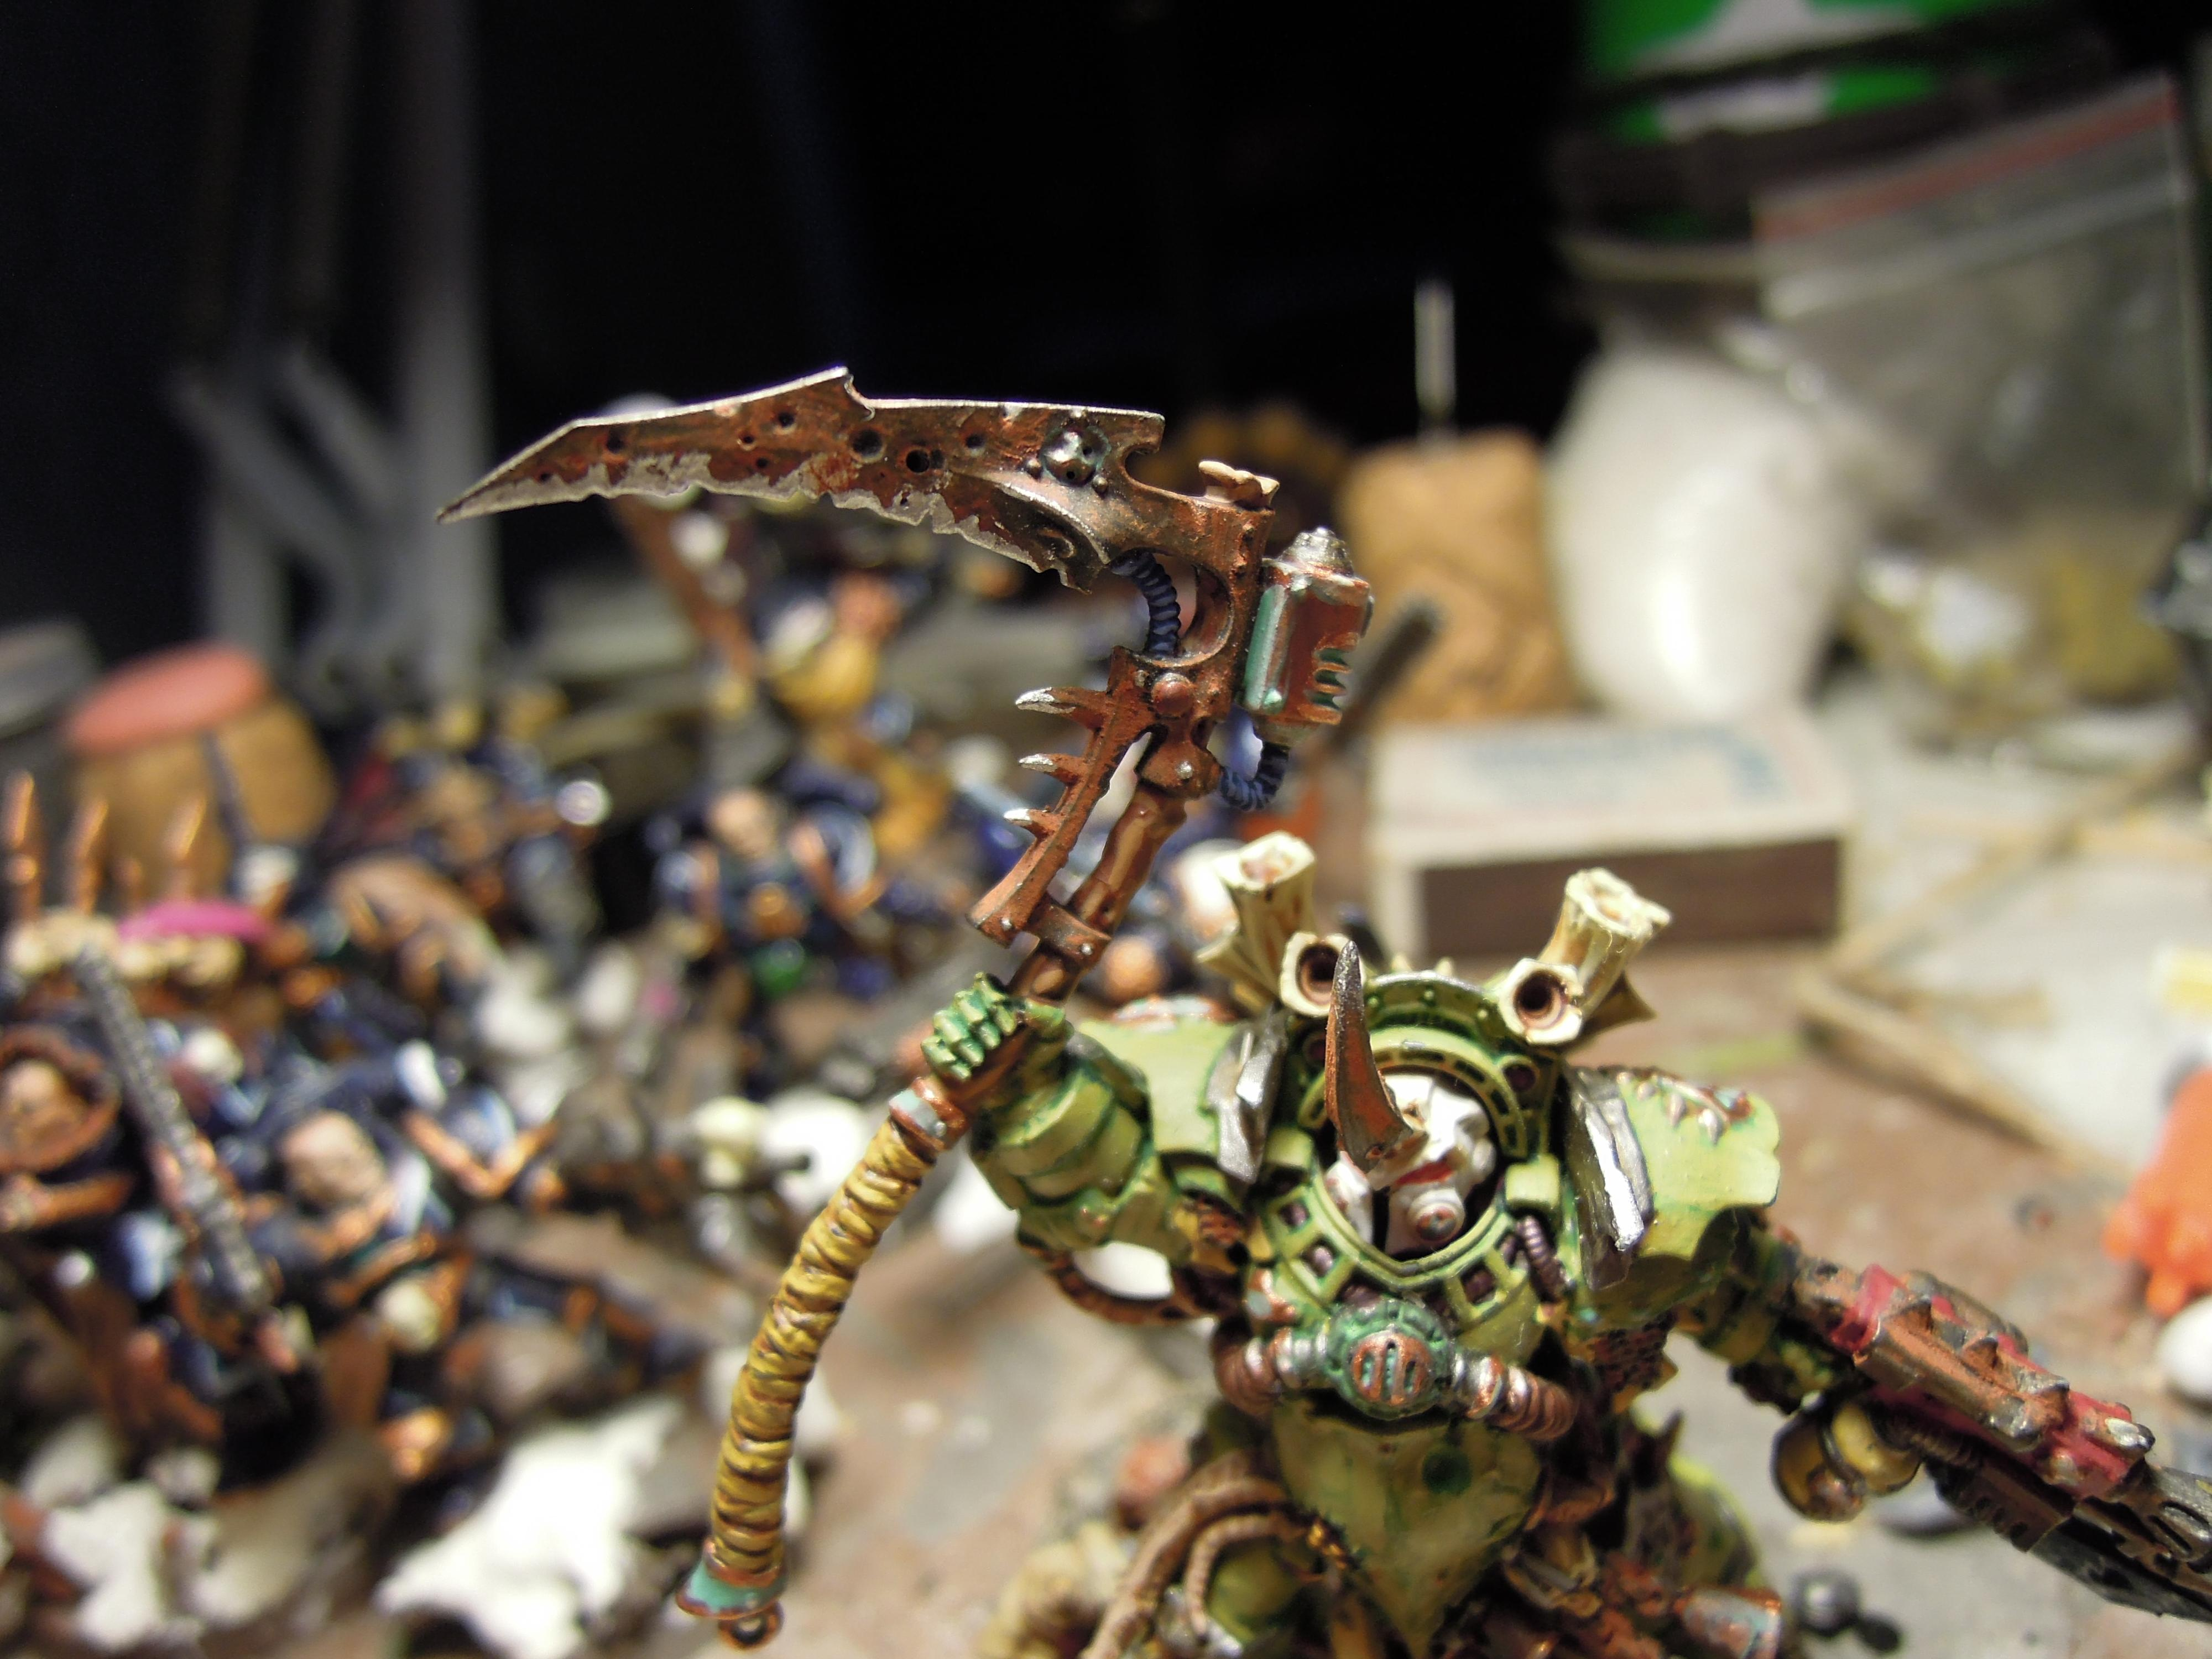 Blight, Cataphract, Chaos, Chaos Space Marines, Combi Weapon, Conversion, Death Guard, Destroyer Hive, Disease, Guts, Heretic Astartes, Pestilence, Plague, Plague Marines, Rot, Scythe, Terminator Armor, Typhus, Warhammer 40,000